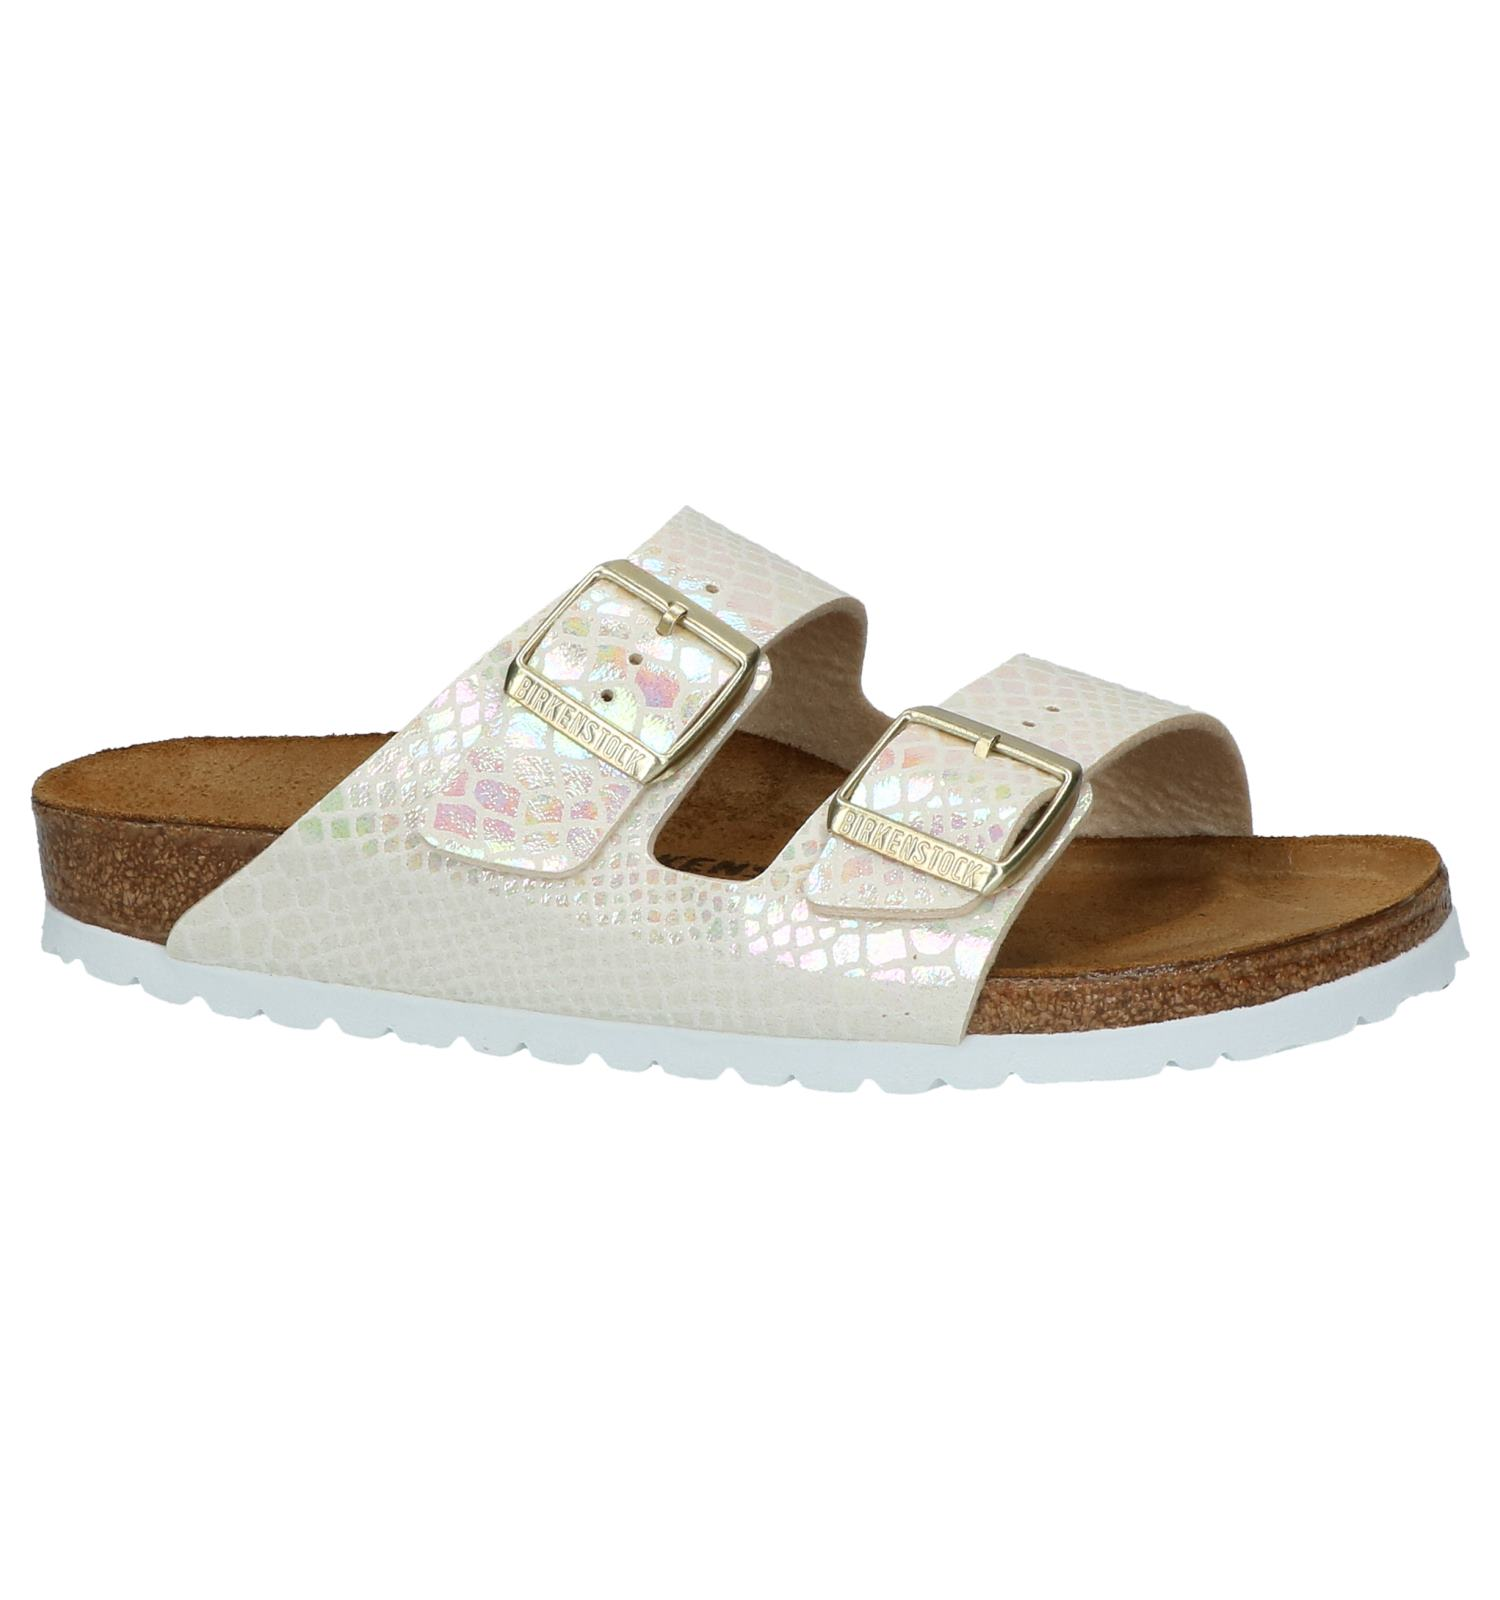 135a94b0e3b27 8) comfy sandals that you can easily slip on and off (I already own these).